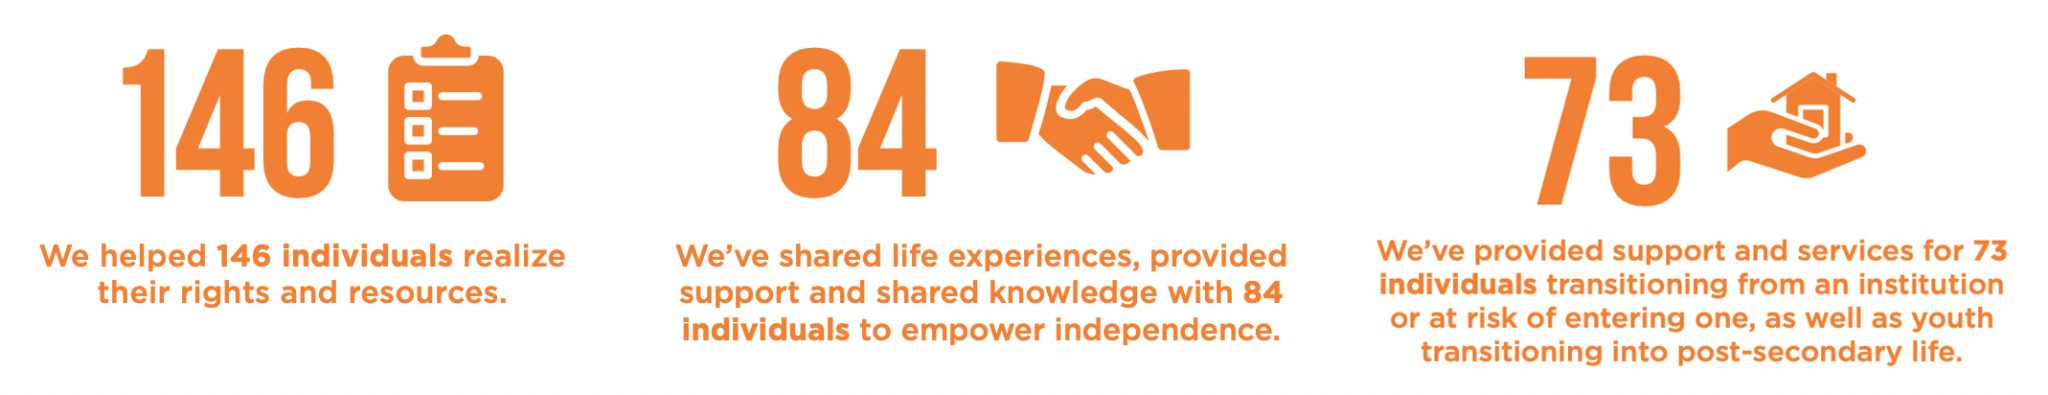 We've helped 146 people realize their rights and resources.